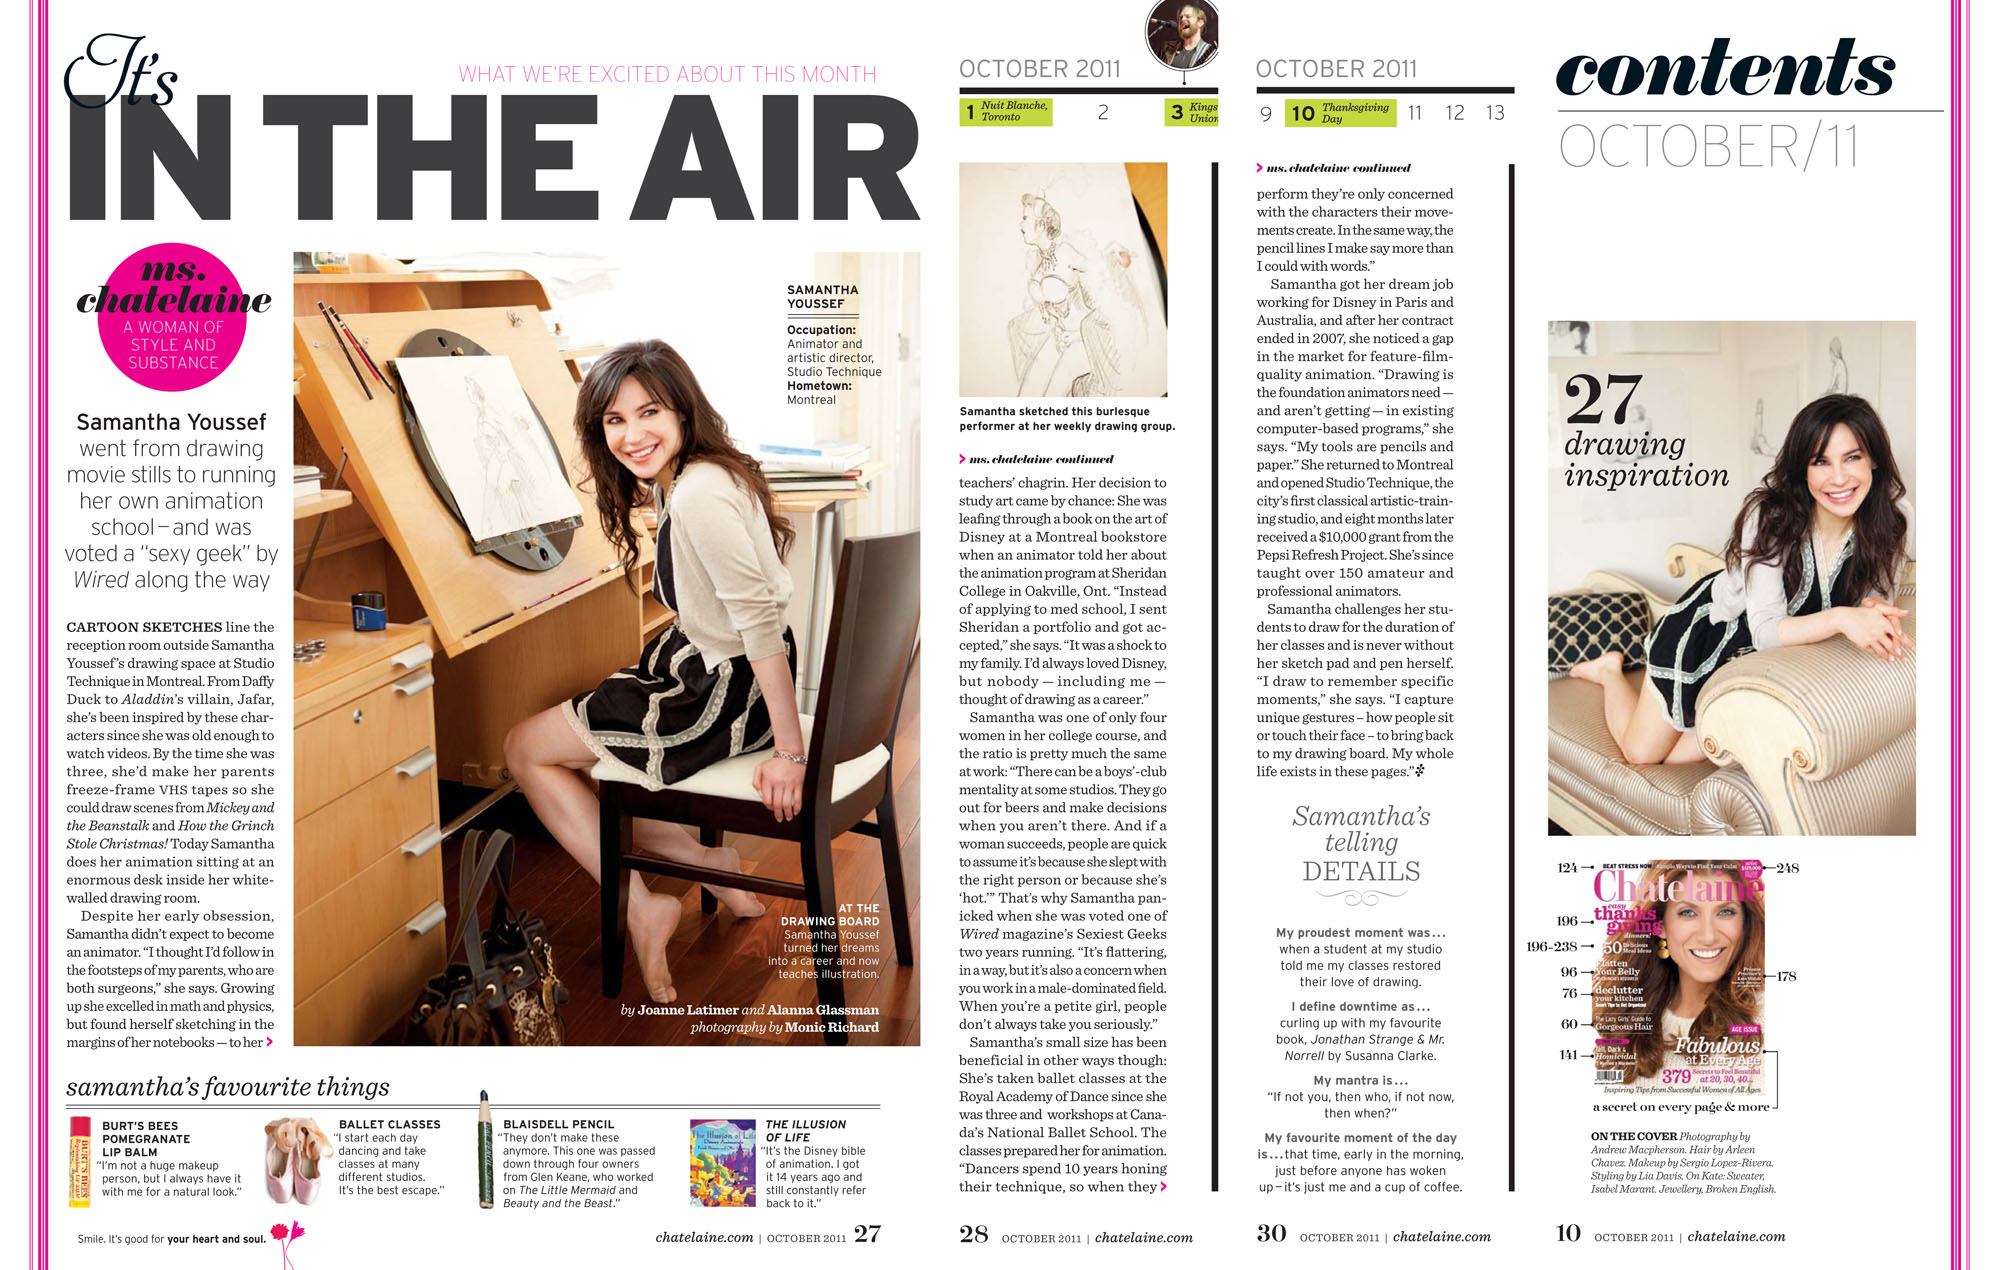 Samantha Youssef & Studio Technique featured in Chatelaine Magazine